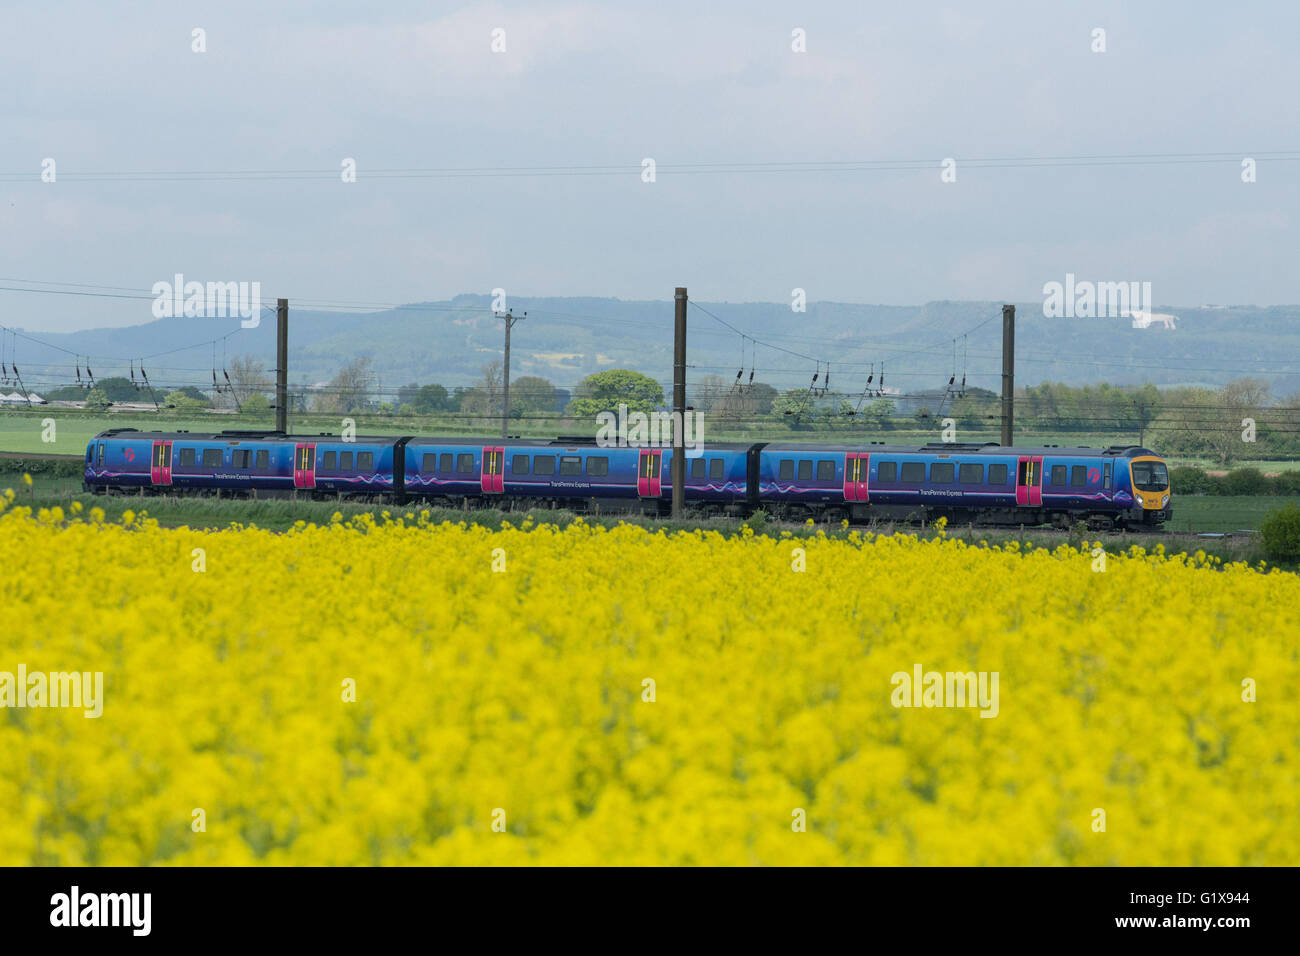 Raskelf, North Yorkshire. 17 May 2016. A TransPennine train travels south through fields nearby Raskelf, North Yorkshire. - Stock Image